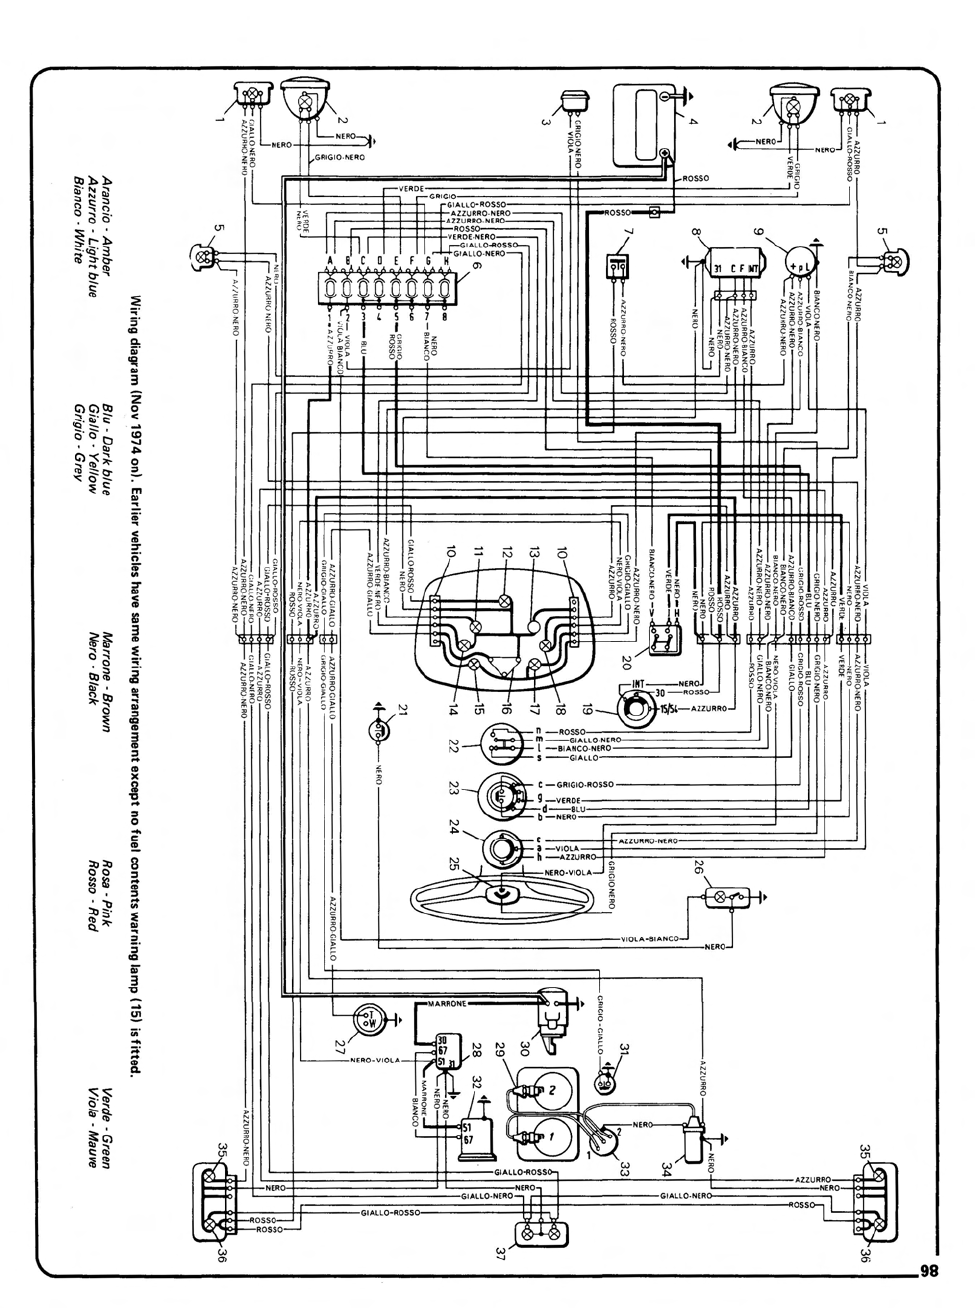 Fiat Generator Wiring Diagram. Fiat. Auto Parts Catalog